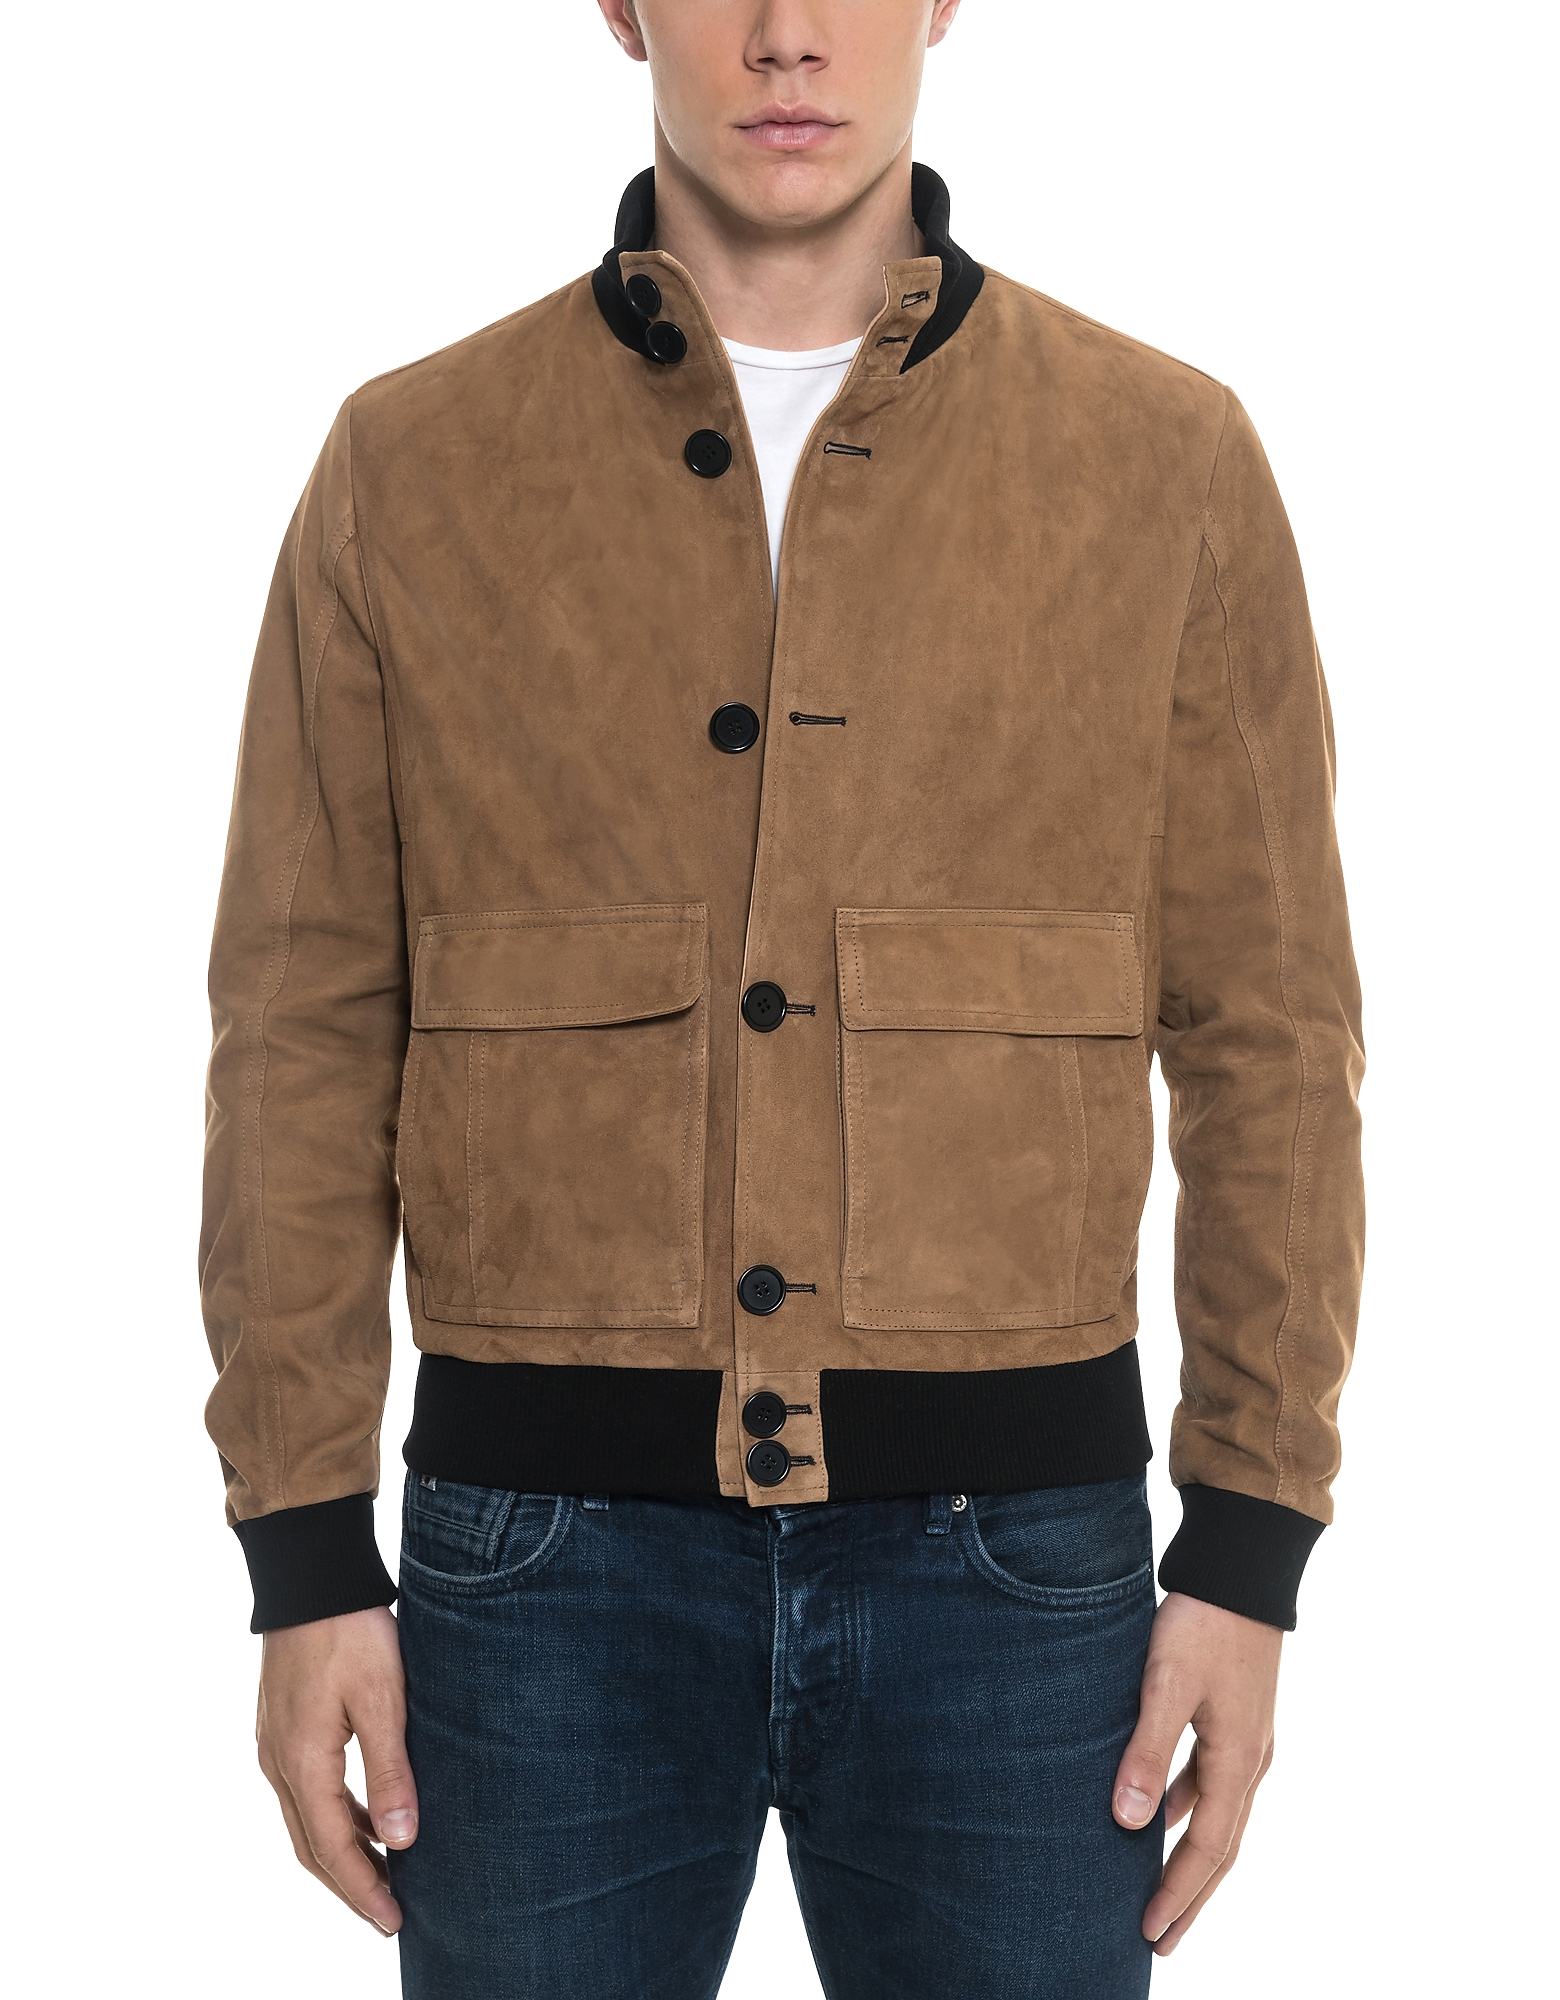 Brown Suede Men's Bomber Jacket